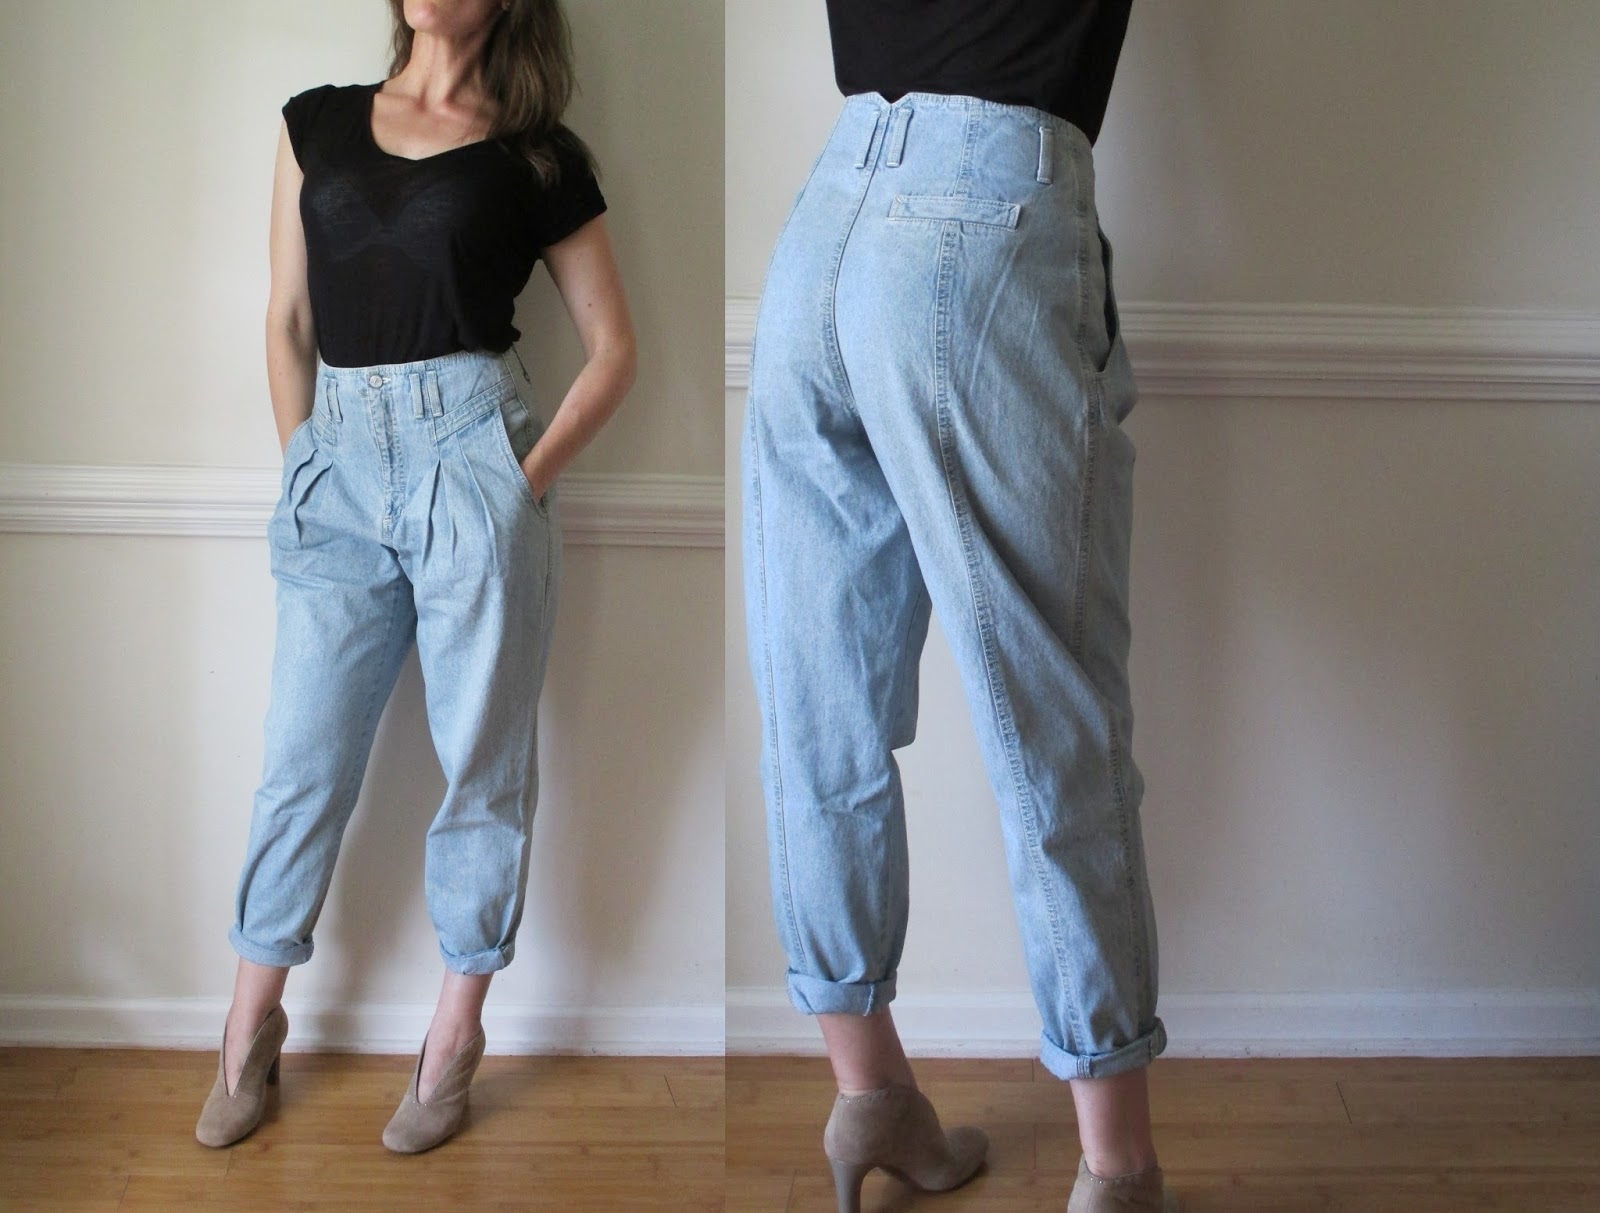 https://www.etsy.com/listing/208050206/80s-90s-high-waist-jeans-1980s-1990s?ref=shop_home_active_2